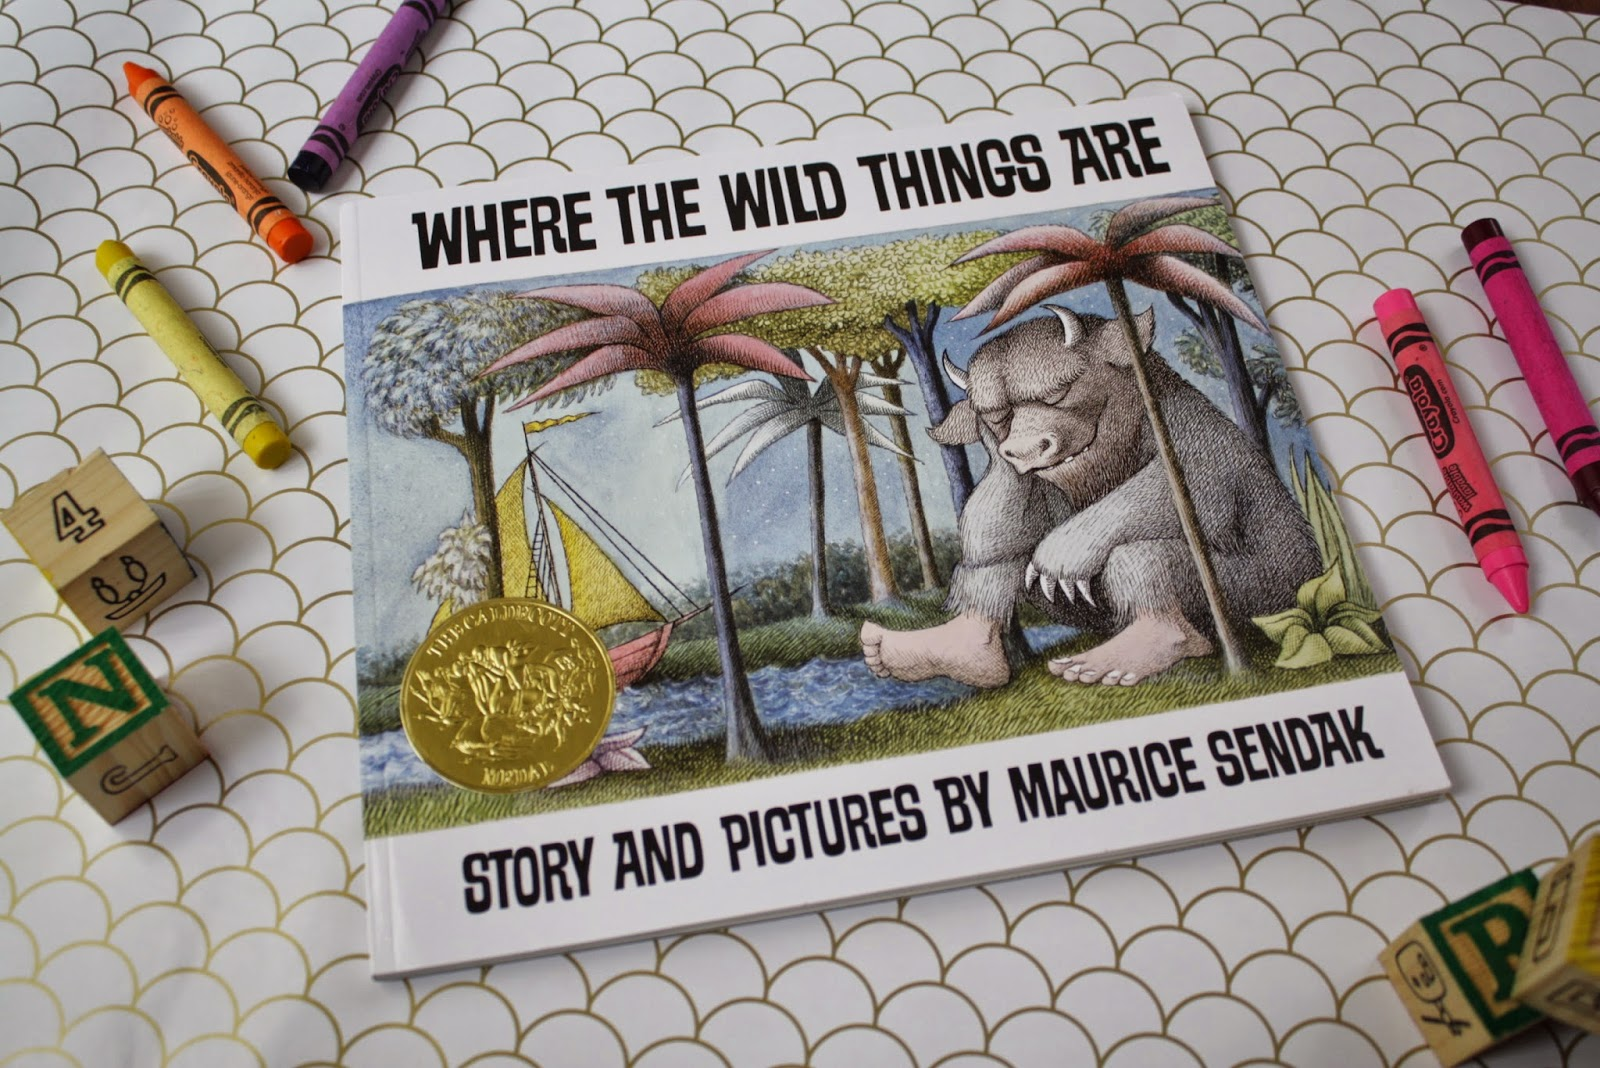 http://www.livealittlewilderblog.com/2014/11/our-favorite-picture-books-second.html